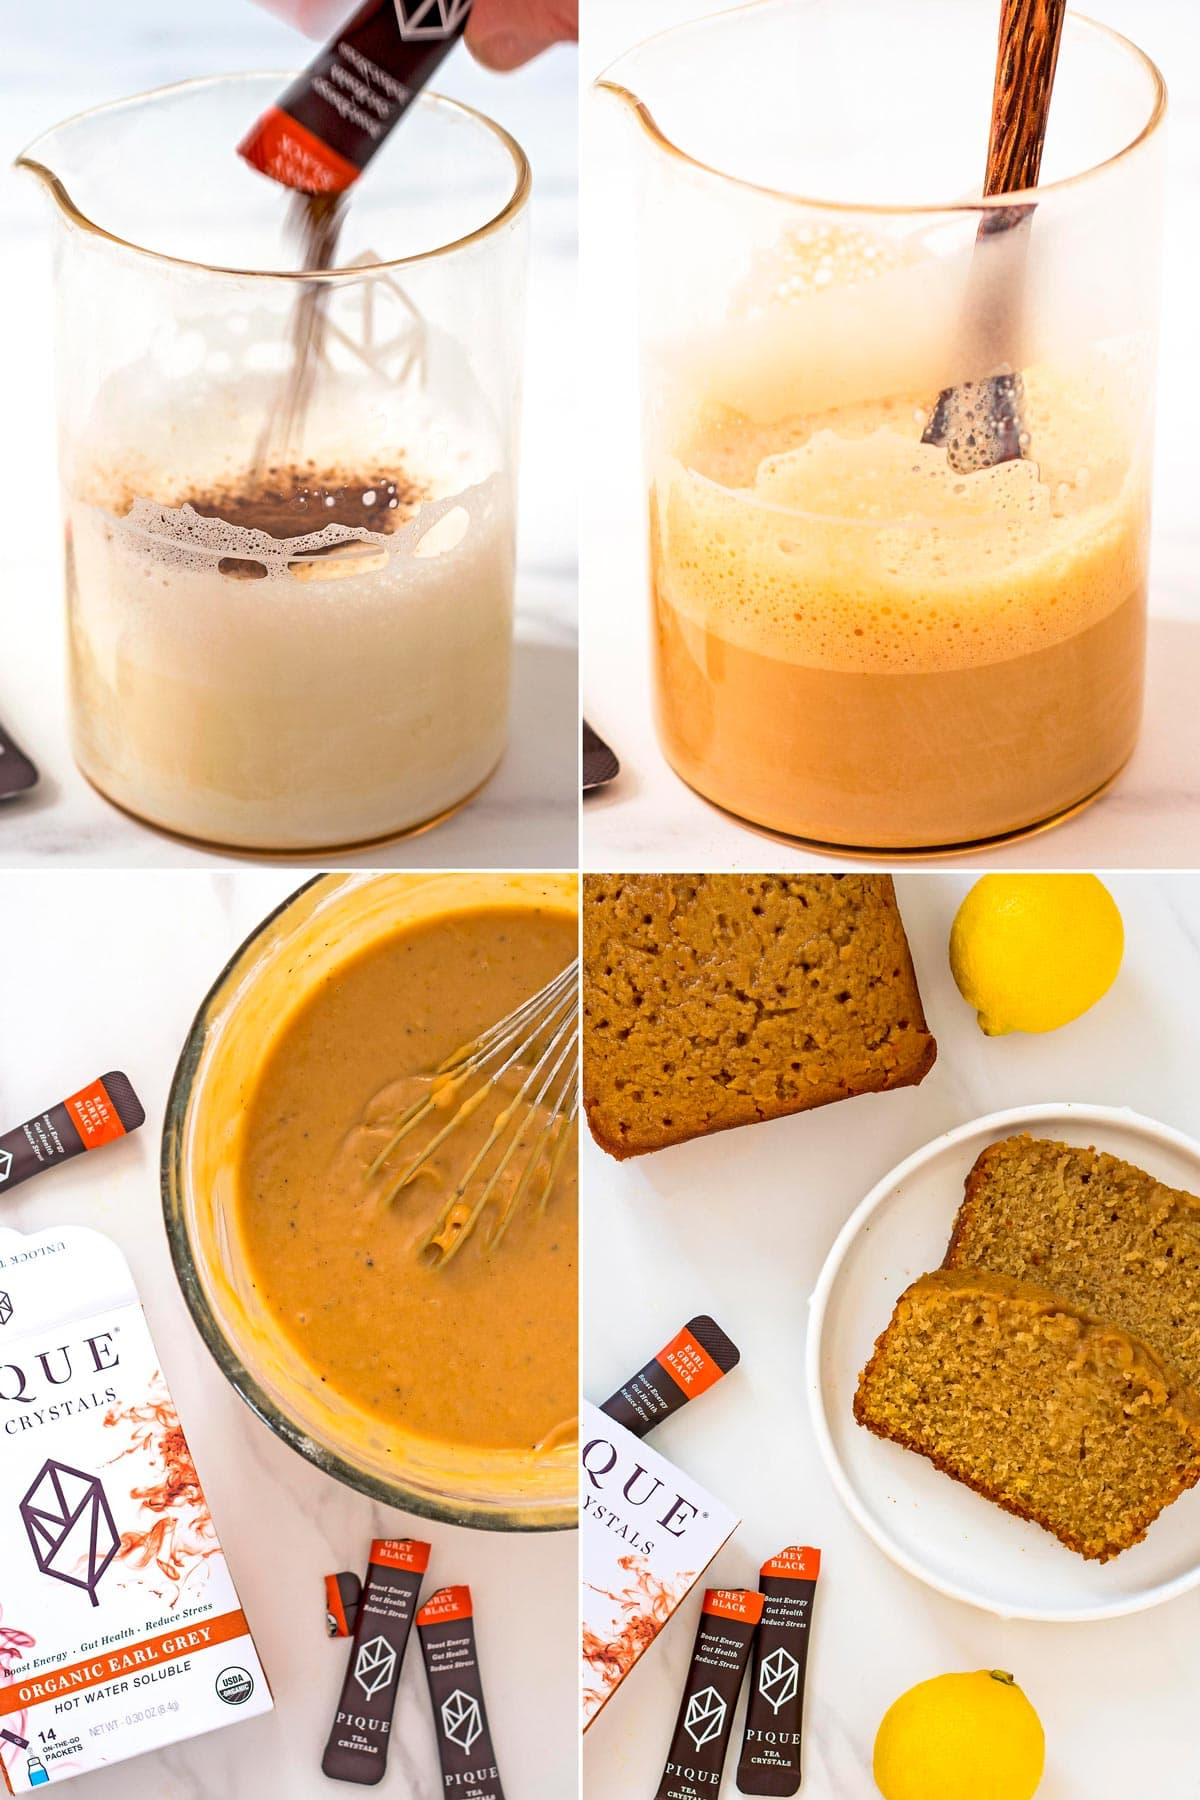 Steps of making earl grey cake with pique tea crystals